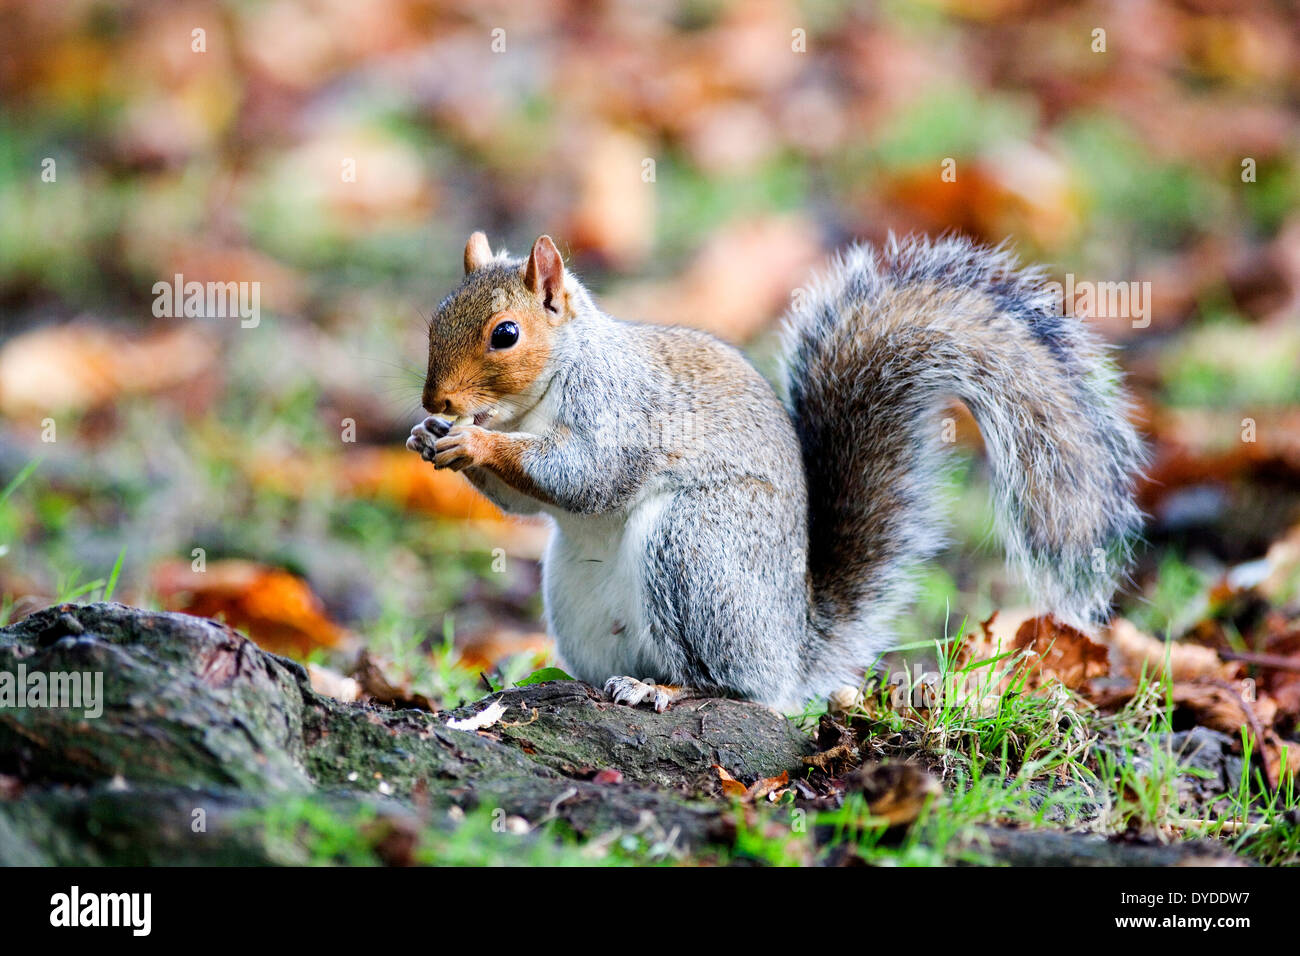 A grey squirrel. Stock Photo